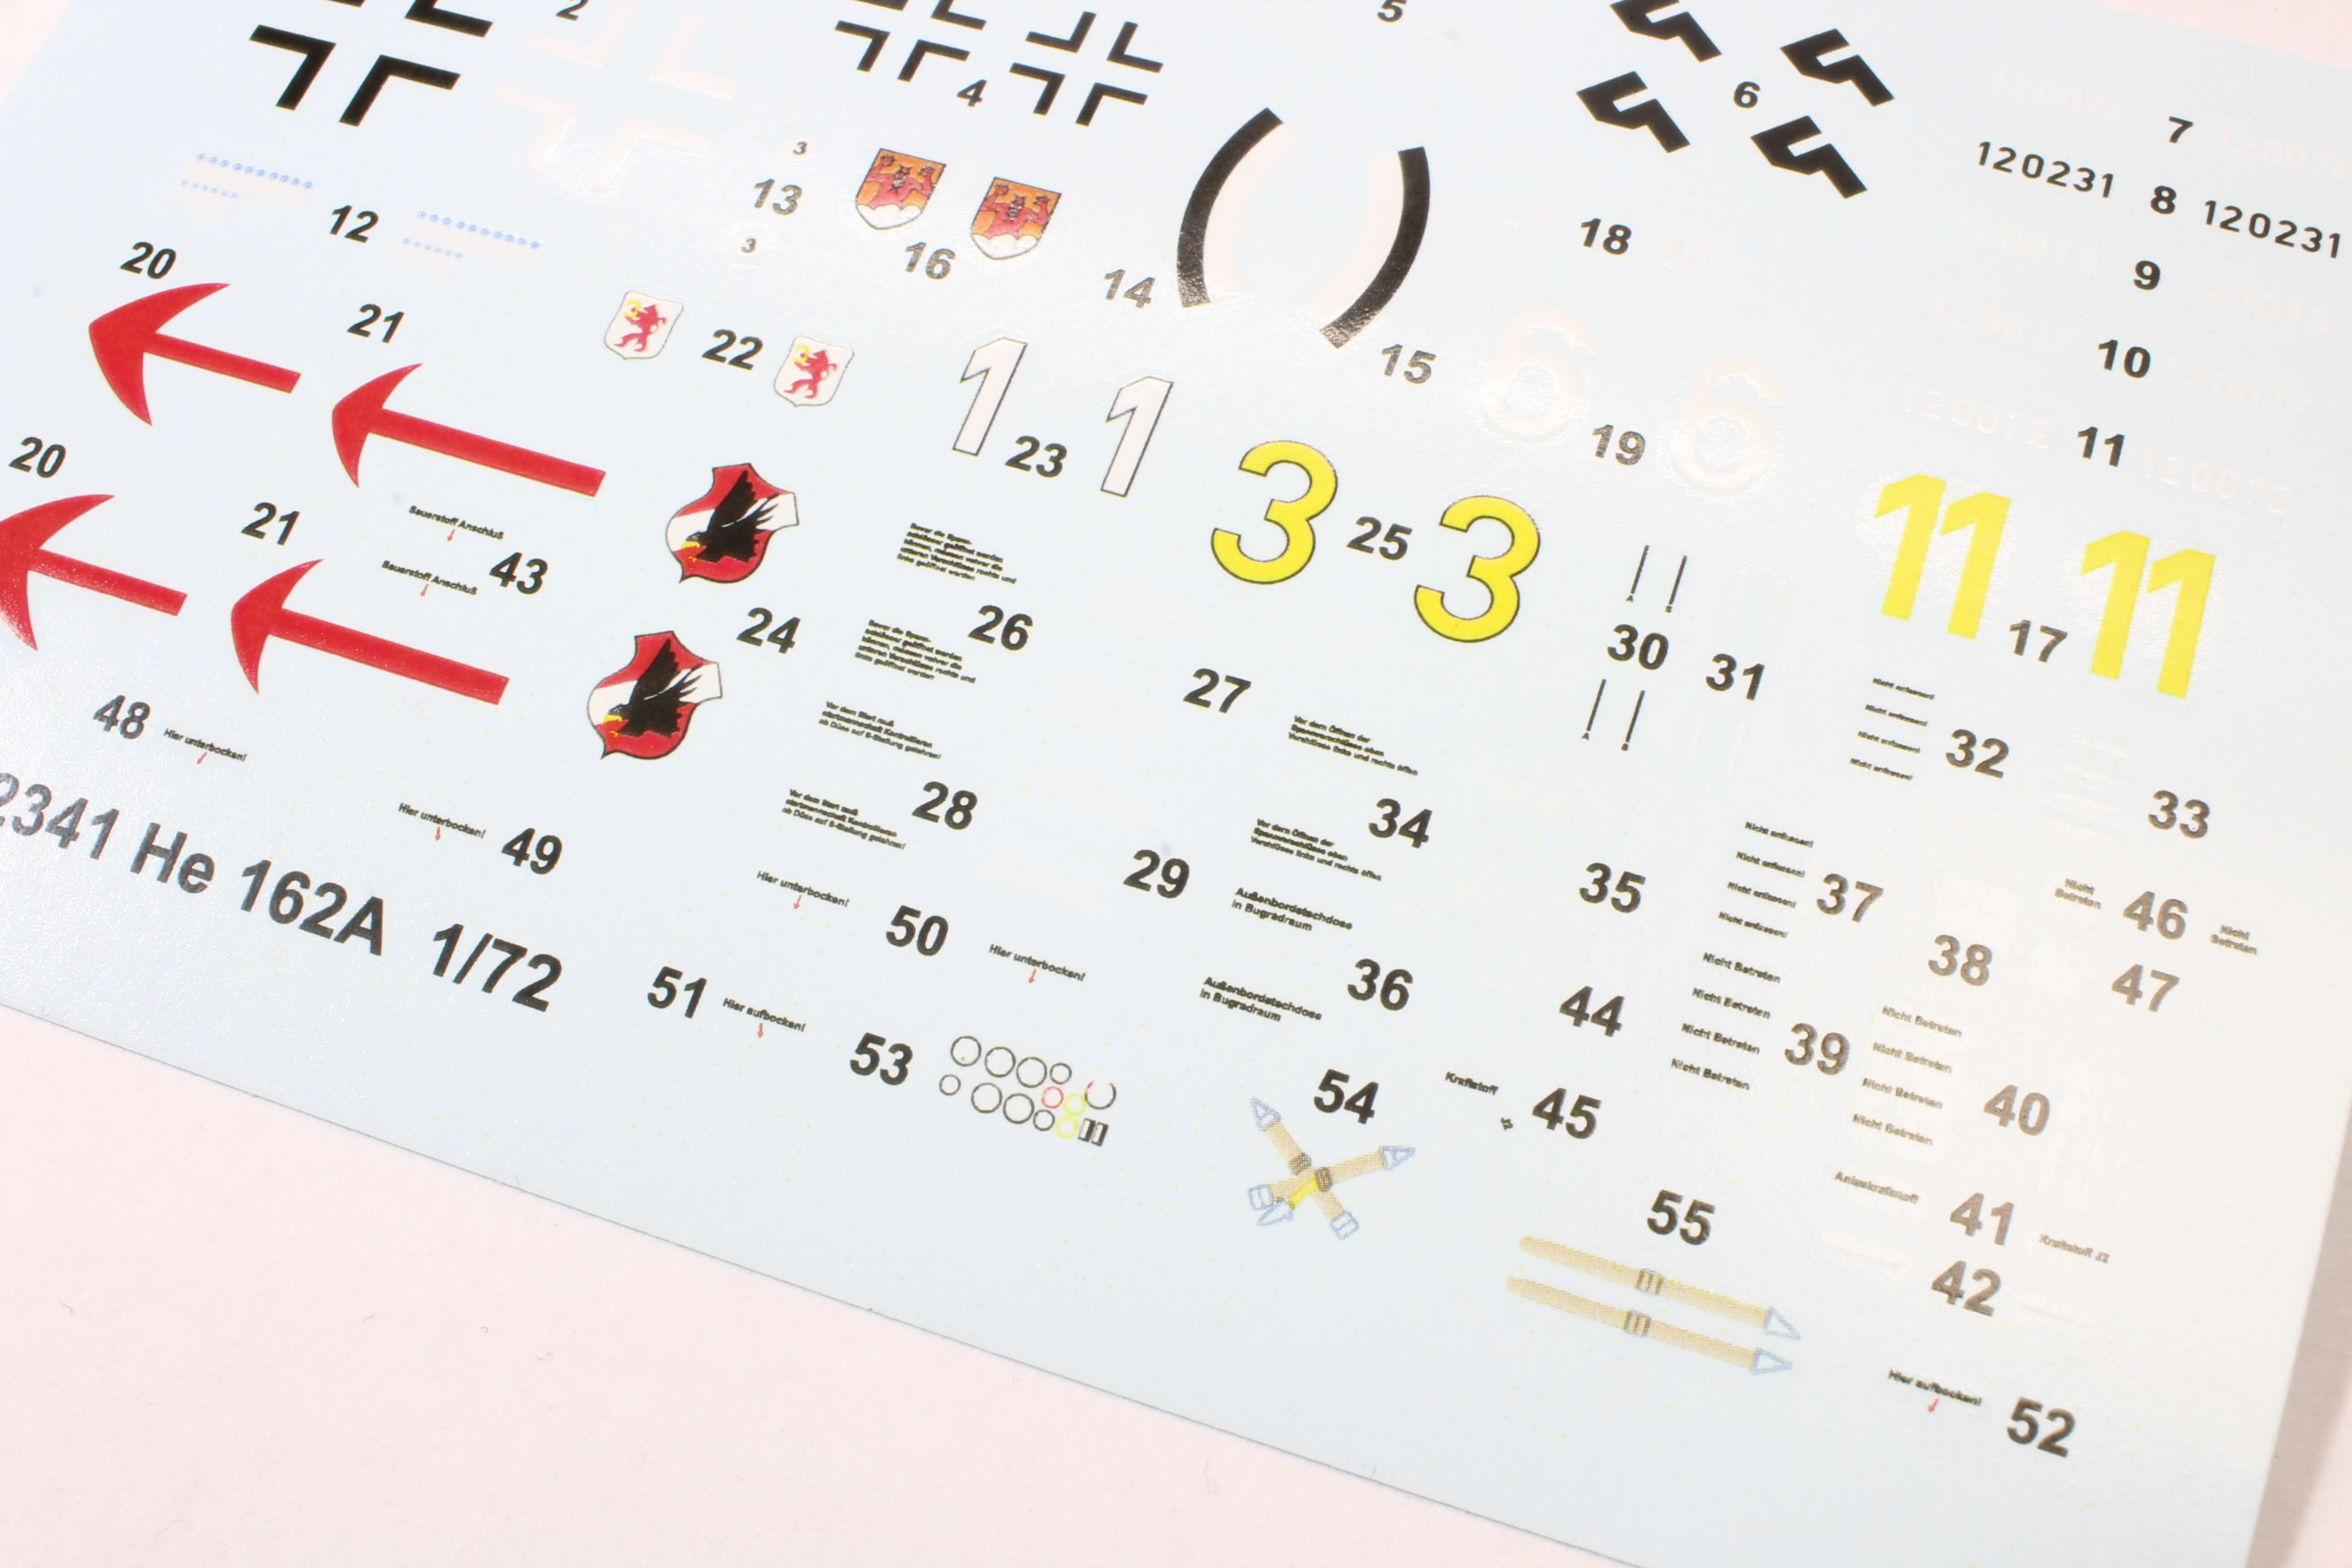 He 162 Spatz, Special Hobby 1/72 Decal